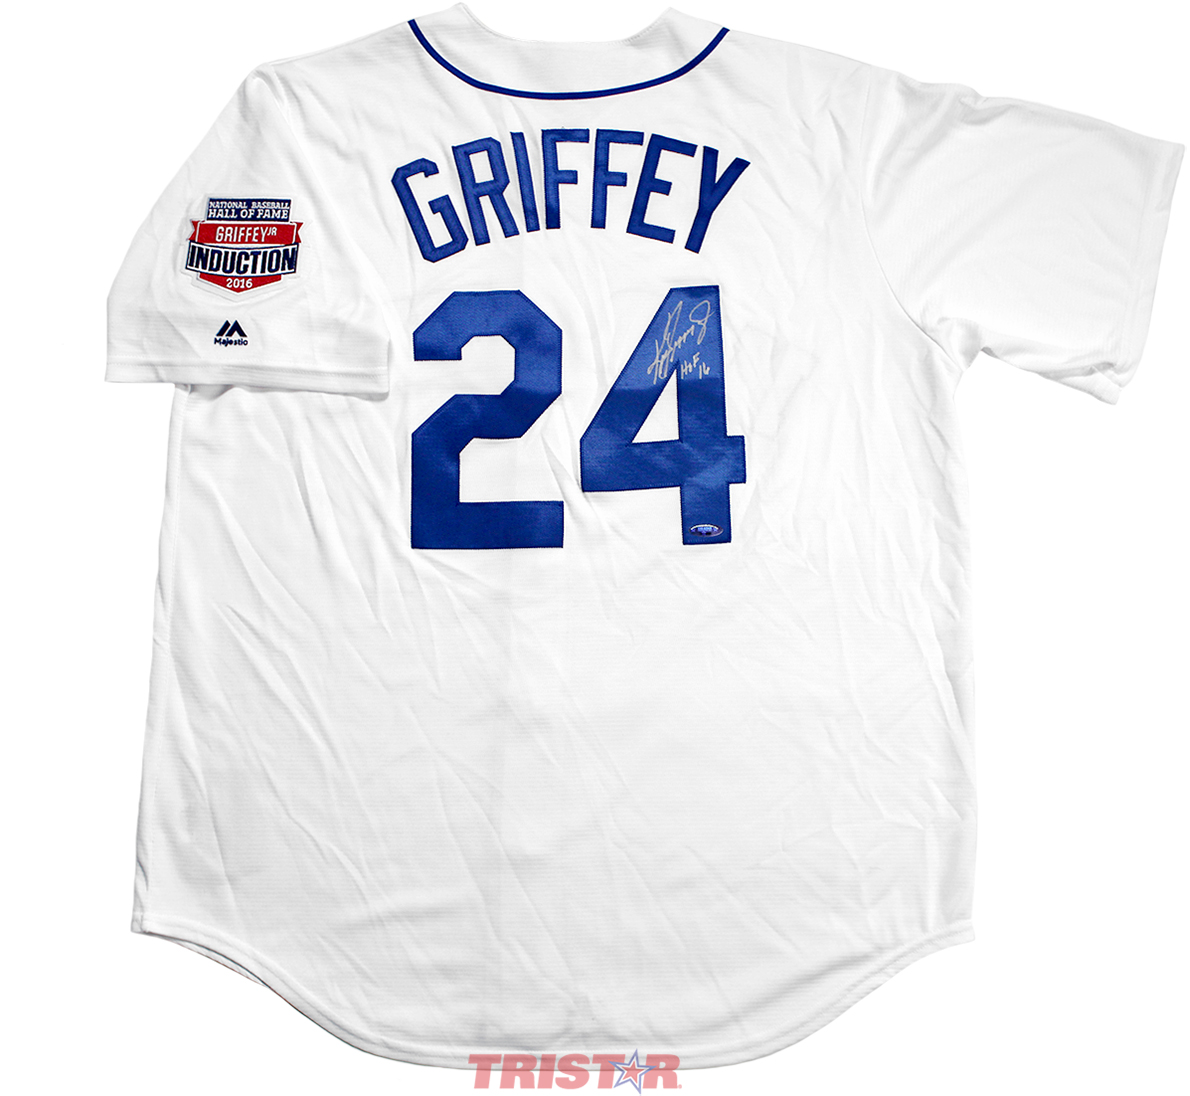 5a2a3f8289a209 Ken Griffey Jr. Autographed Seattle Mariners 1989 Replica Jersey ...